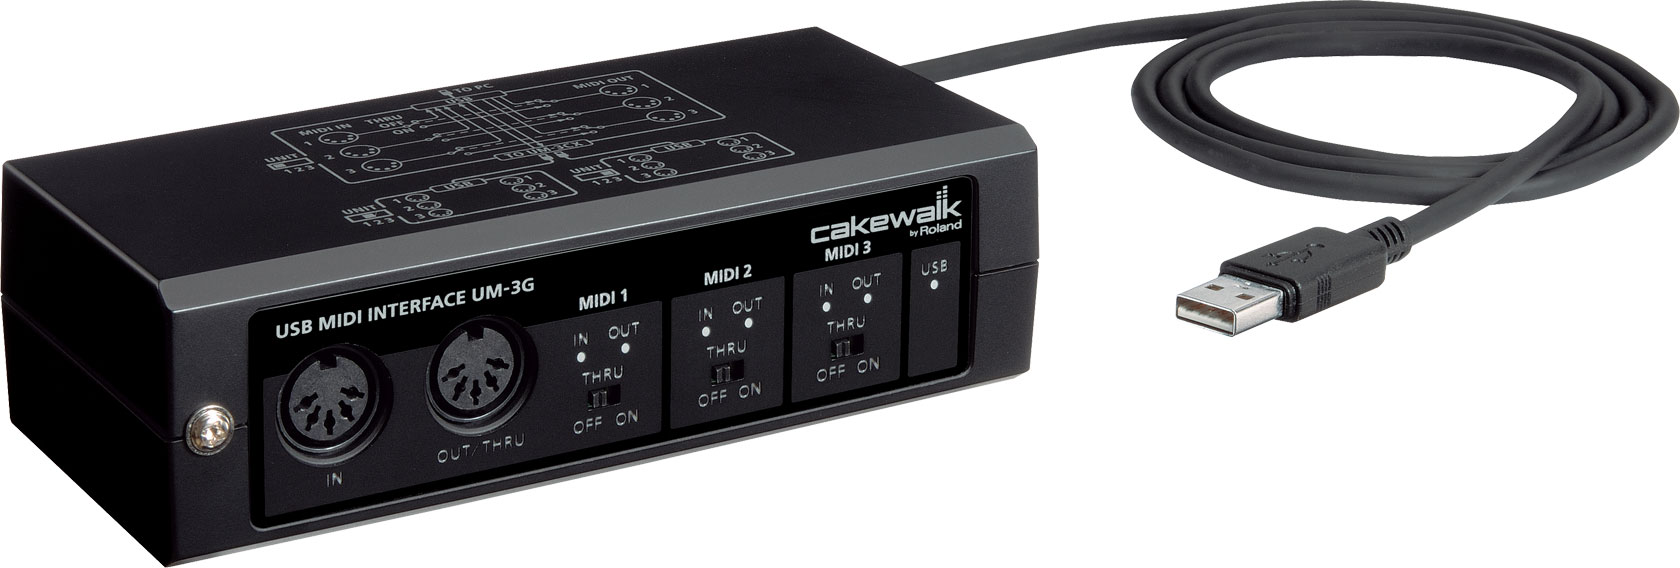 CAKEWALK UM-3G WINDOWS VISTA DRIVER